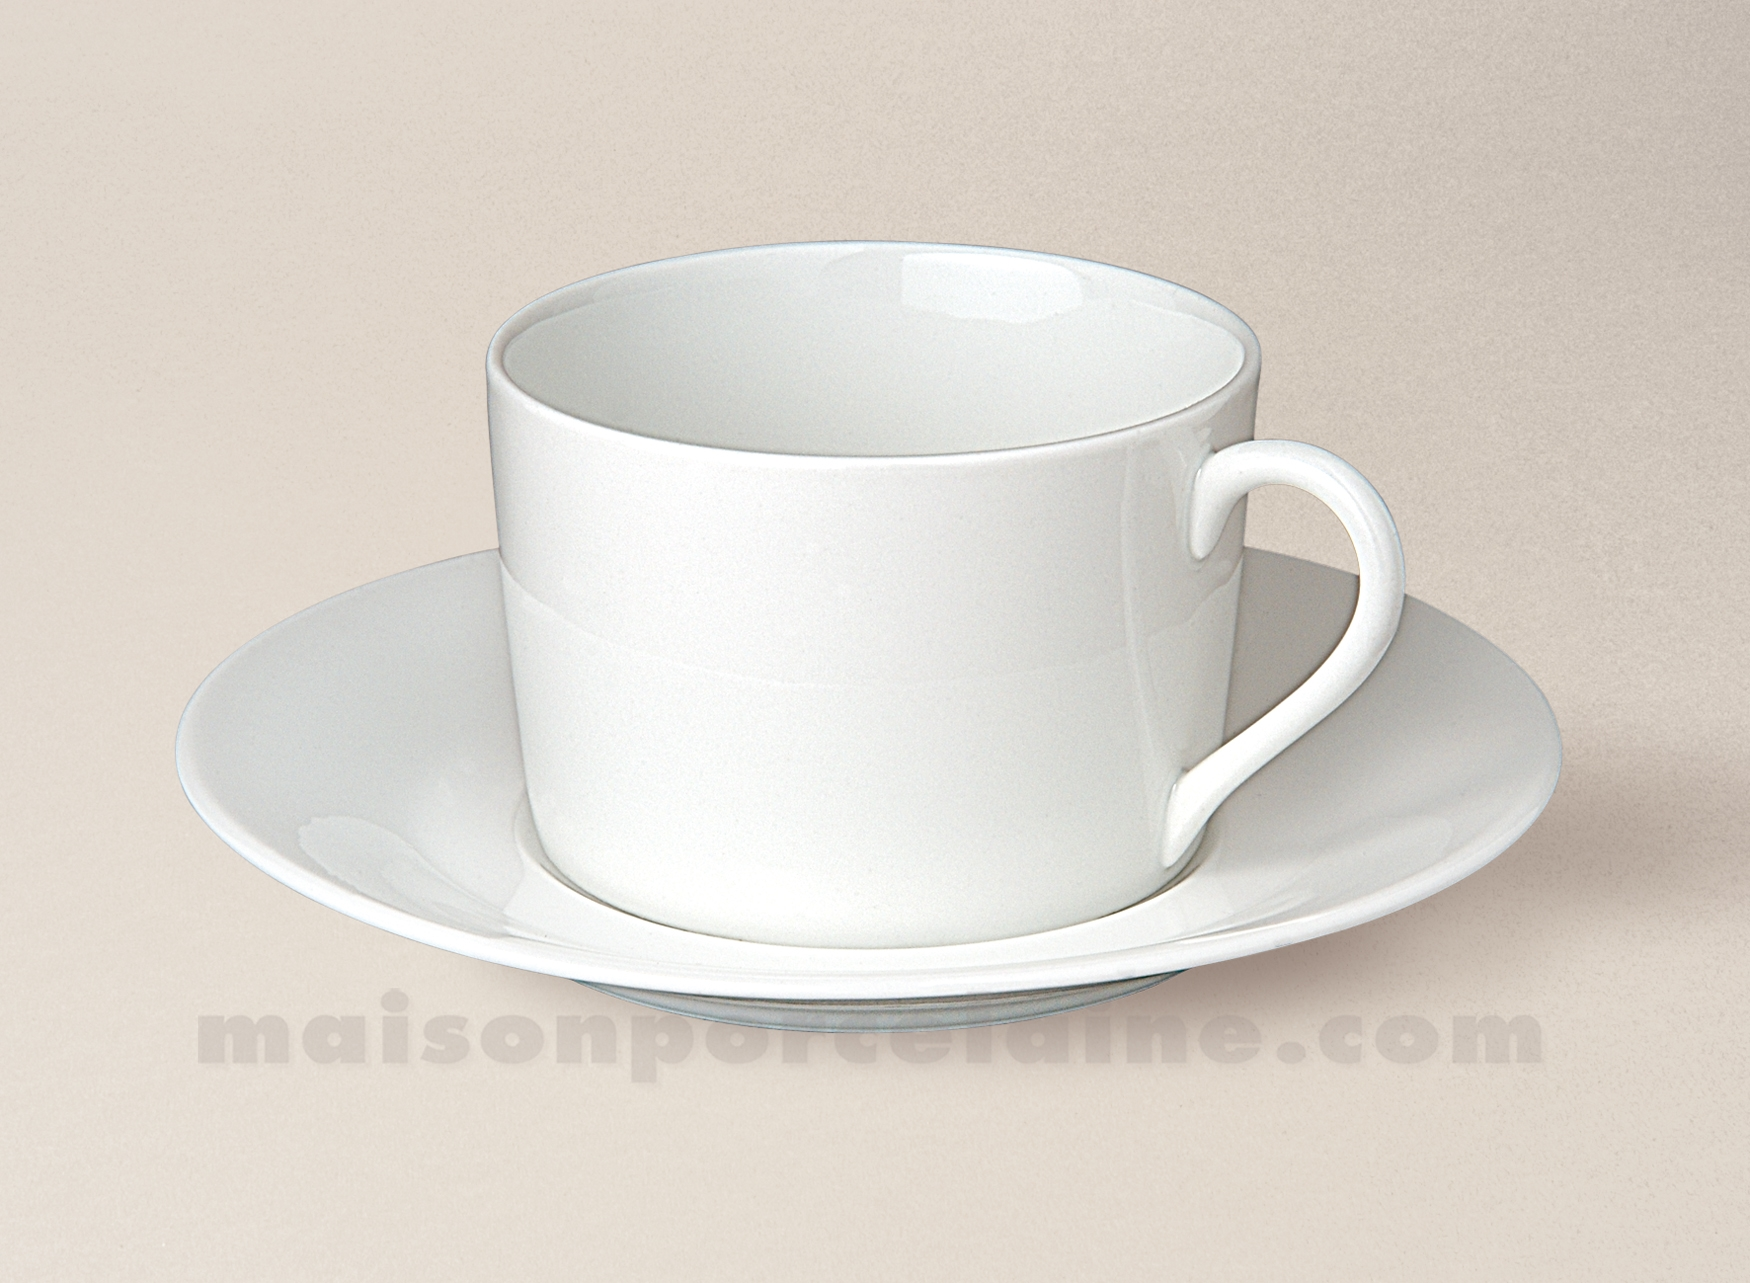 Tasse the empire soucoupe porcelaine blanche sologne 20cl for Maison de la porcelaine